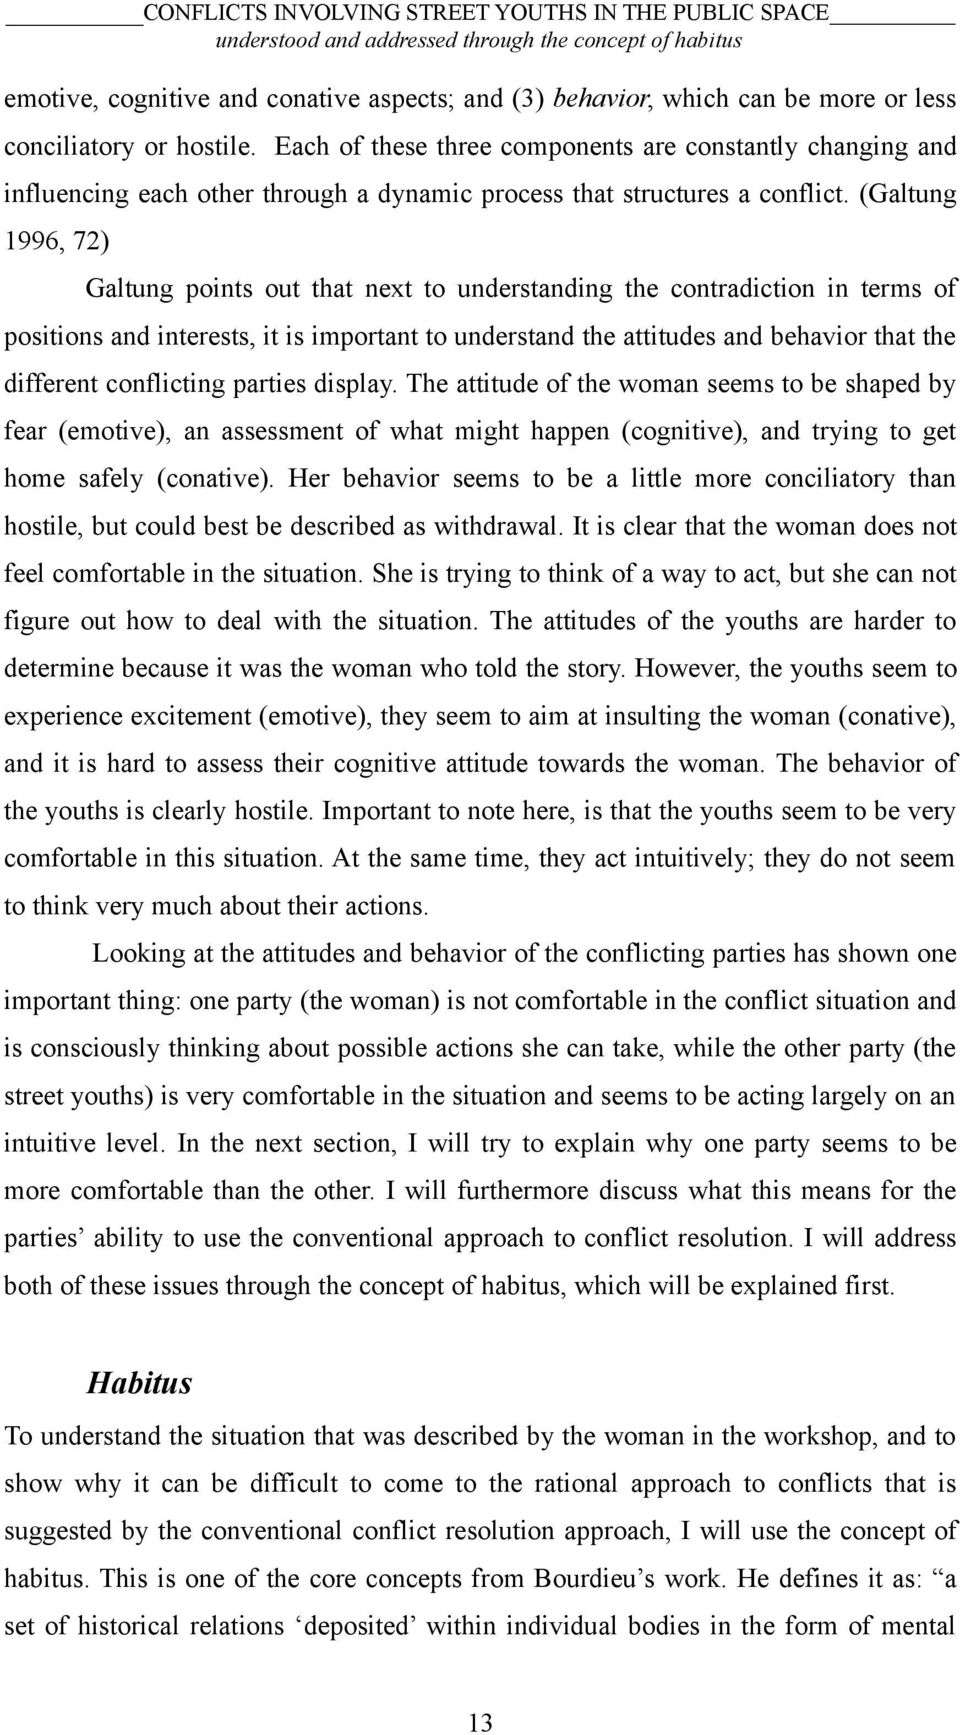 (Galtung 1996, 72) Galtung points out that next to understanding the contradiction in terms of positions and interests, it is important to understand the attitudes and behavior that the different